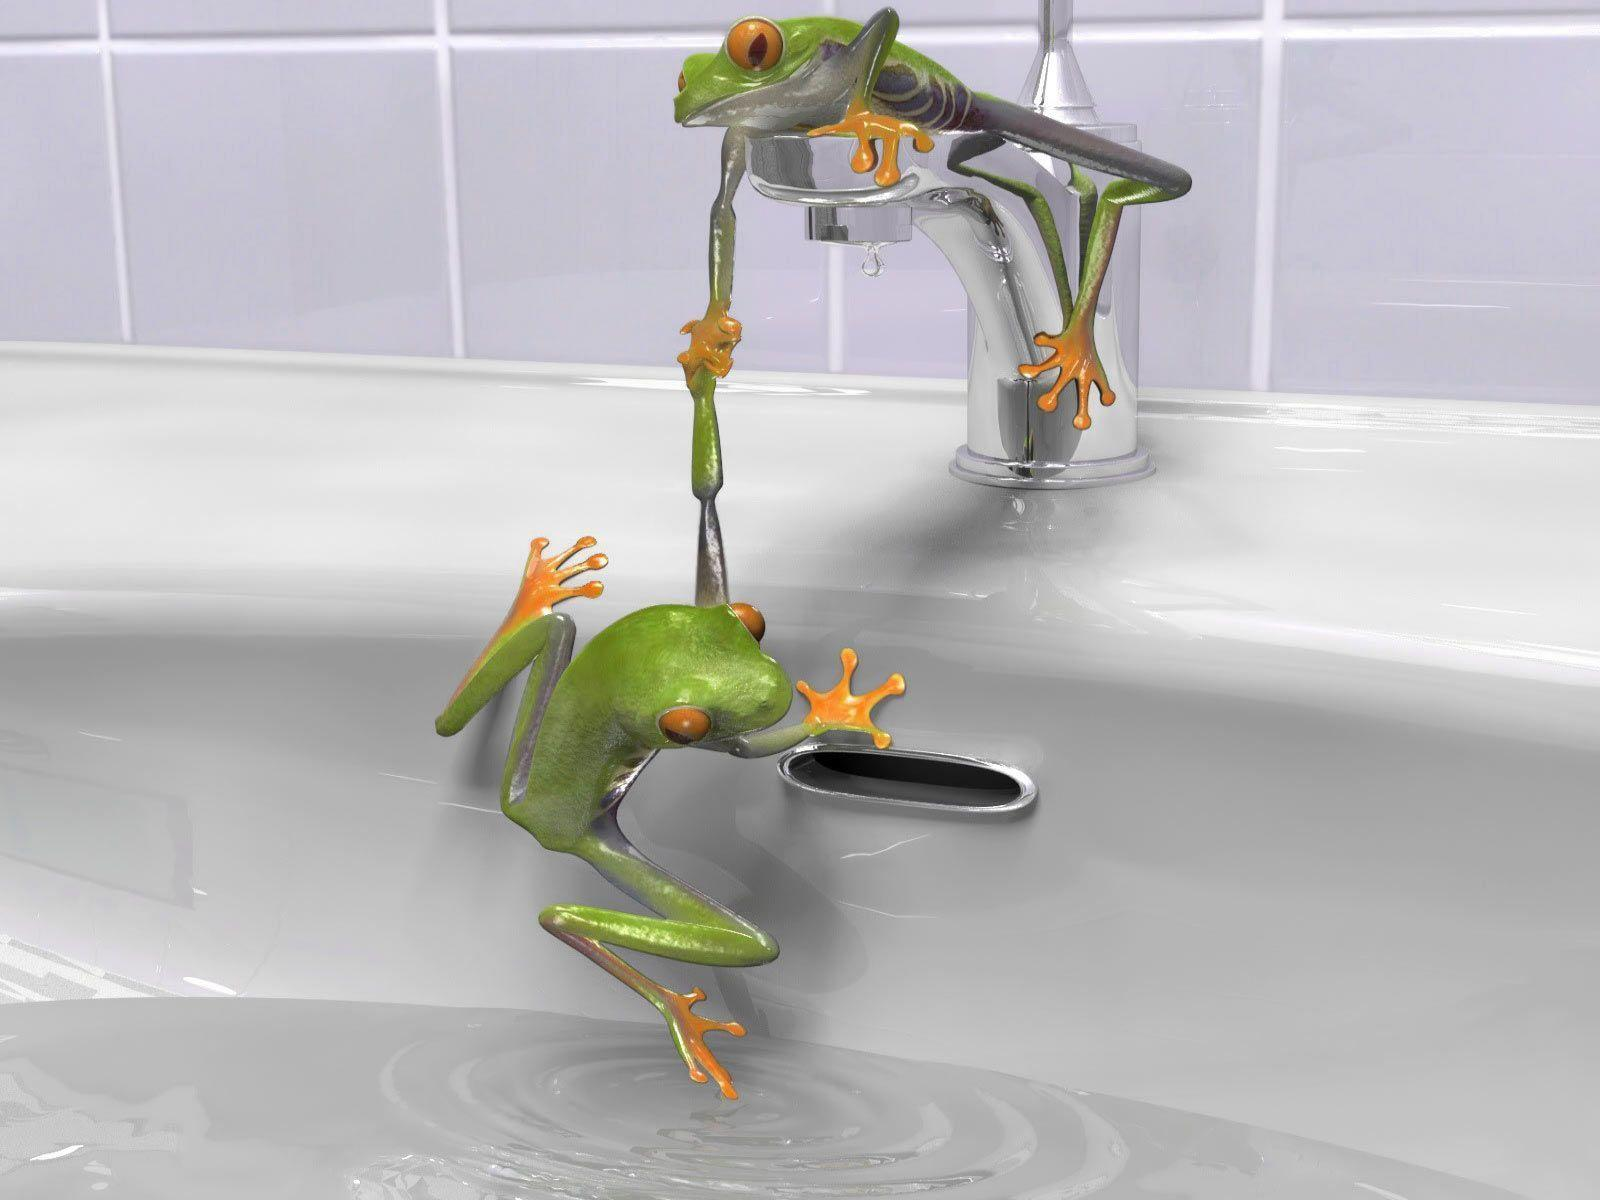 Bathroom Bathtub Cartoon Faucet Frog Frogs Funny Green Water